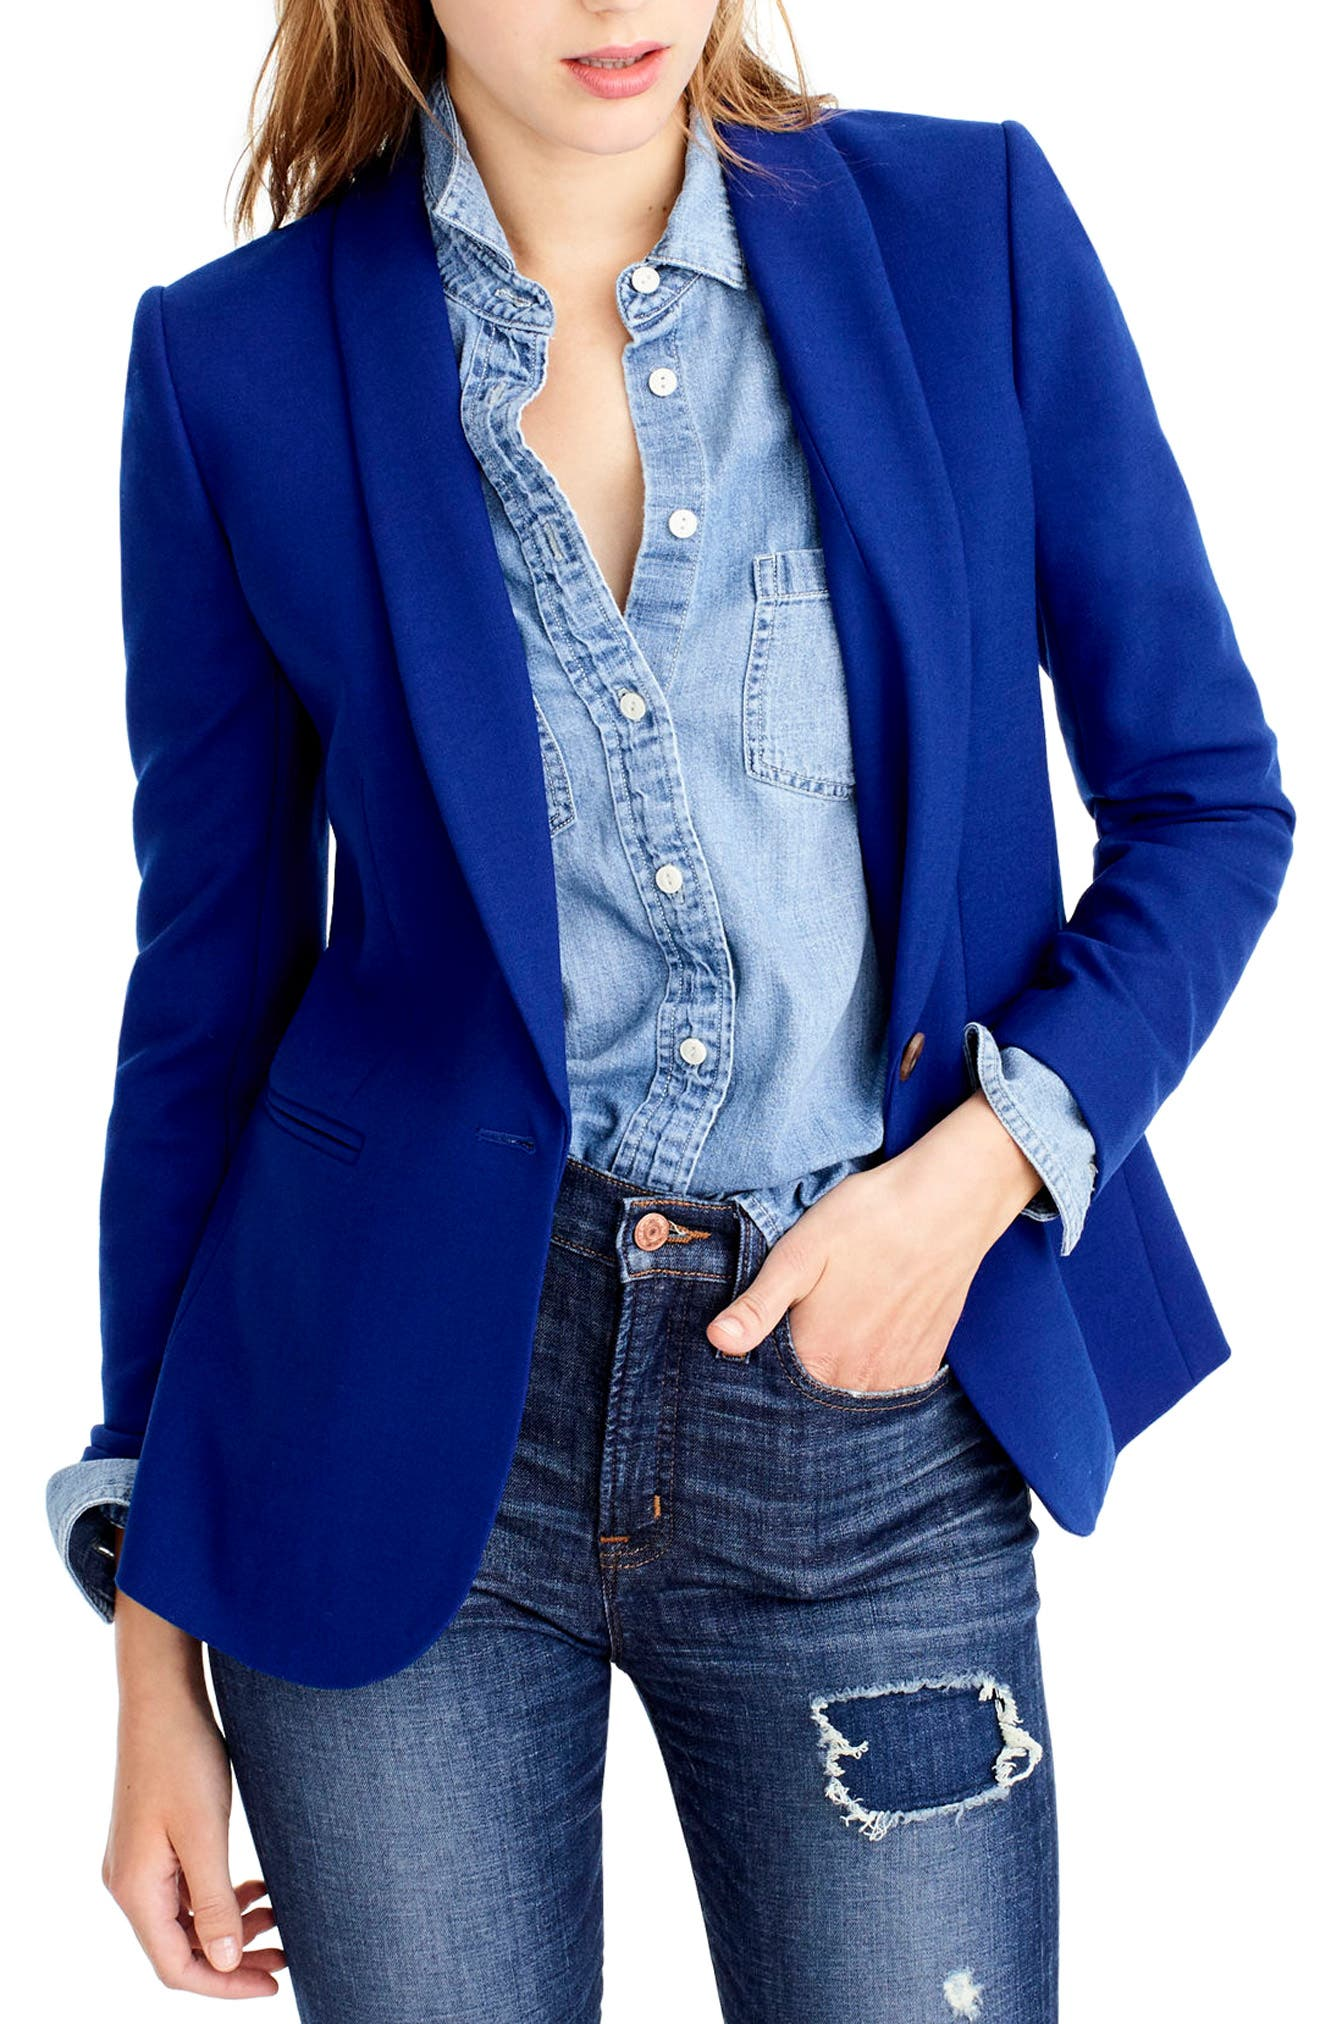 J.Crew Parke Blazer,                             Main thumbnail 1, color,                             Bright Indigo